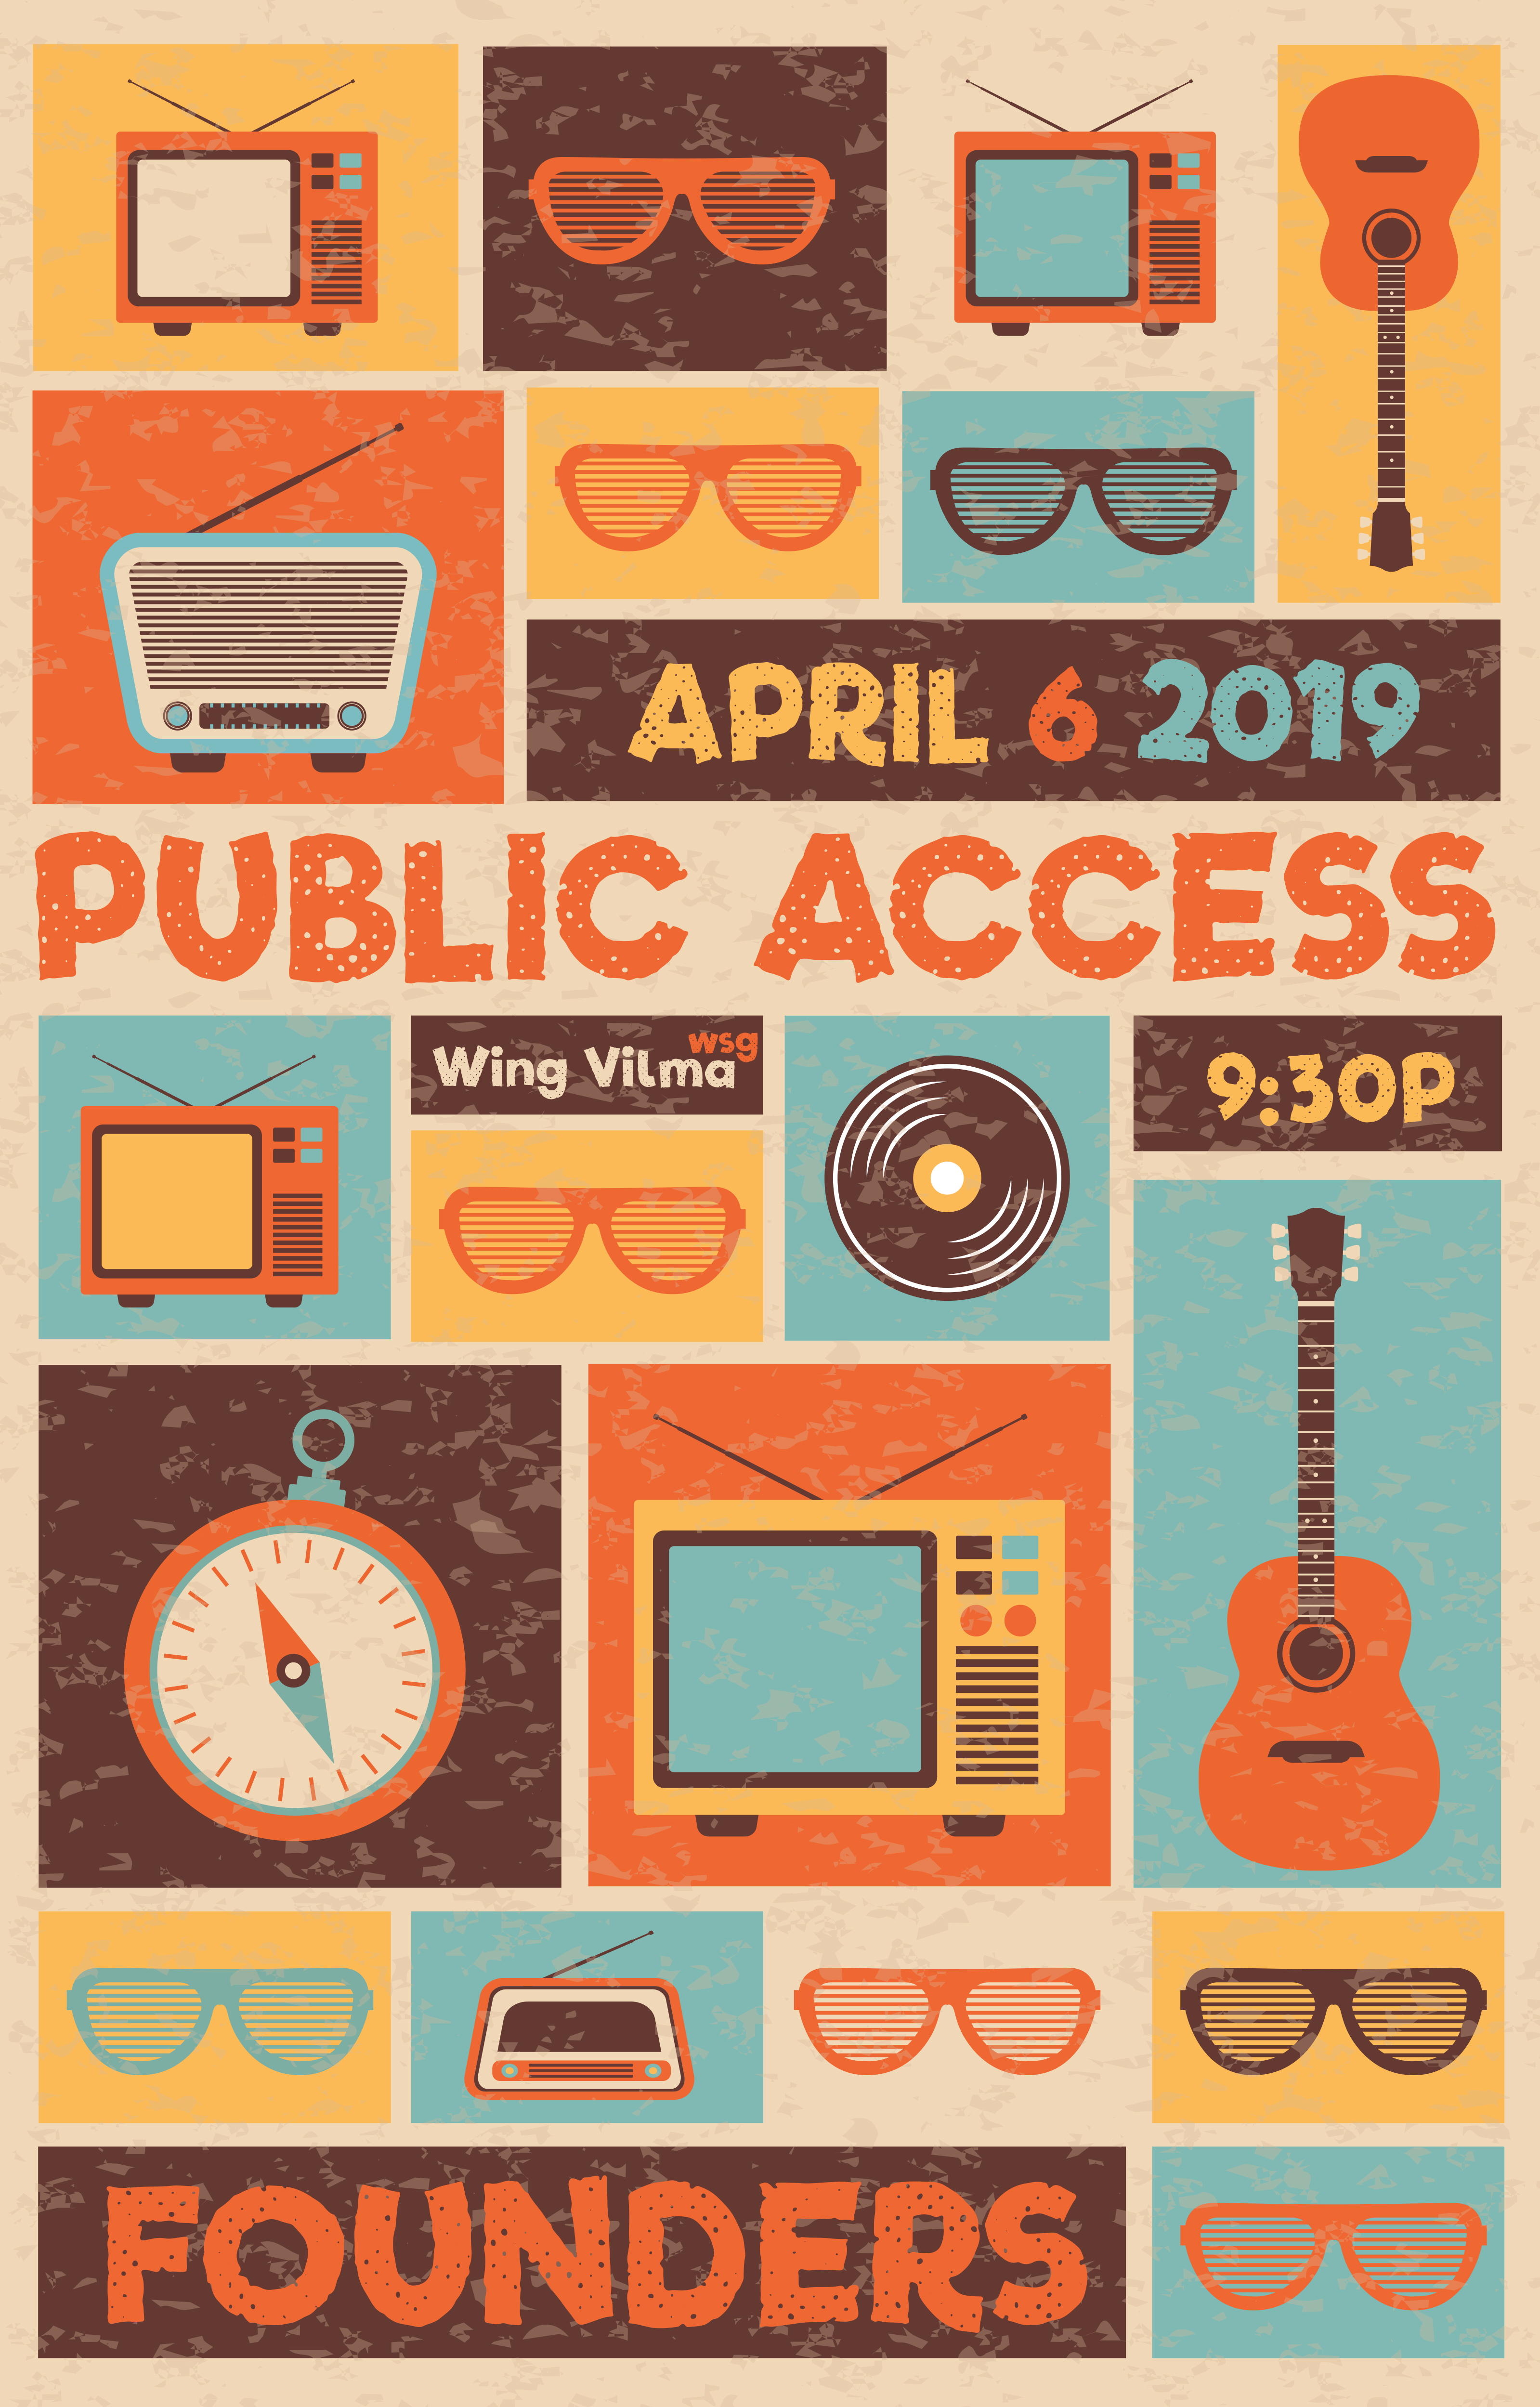 Public Access event poster at Founders